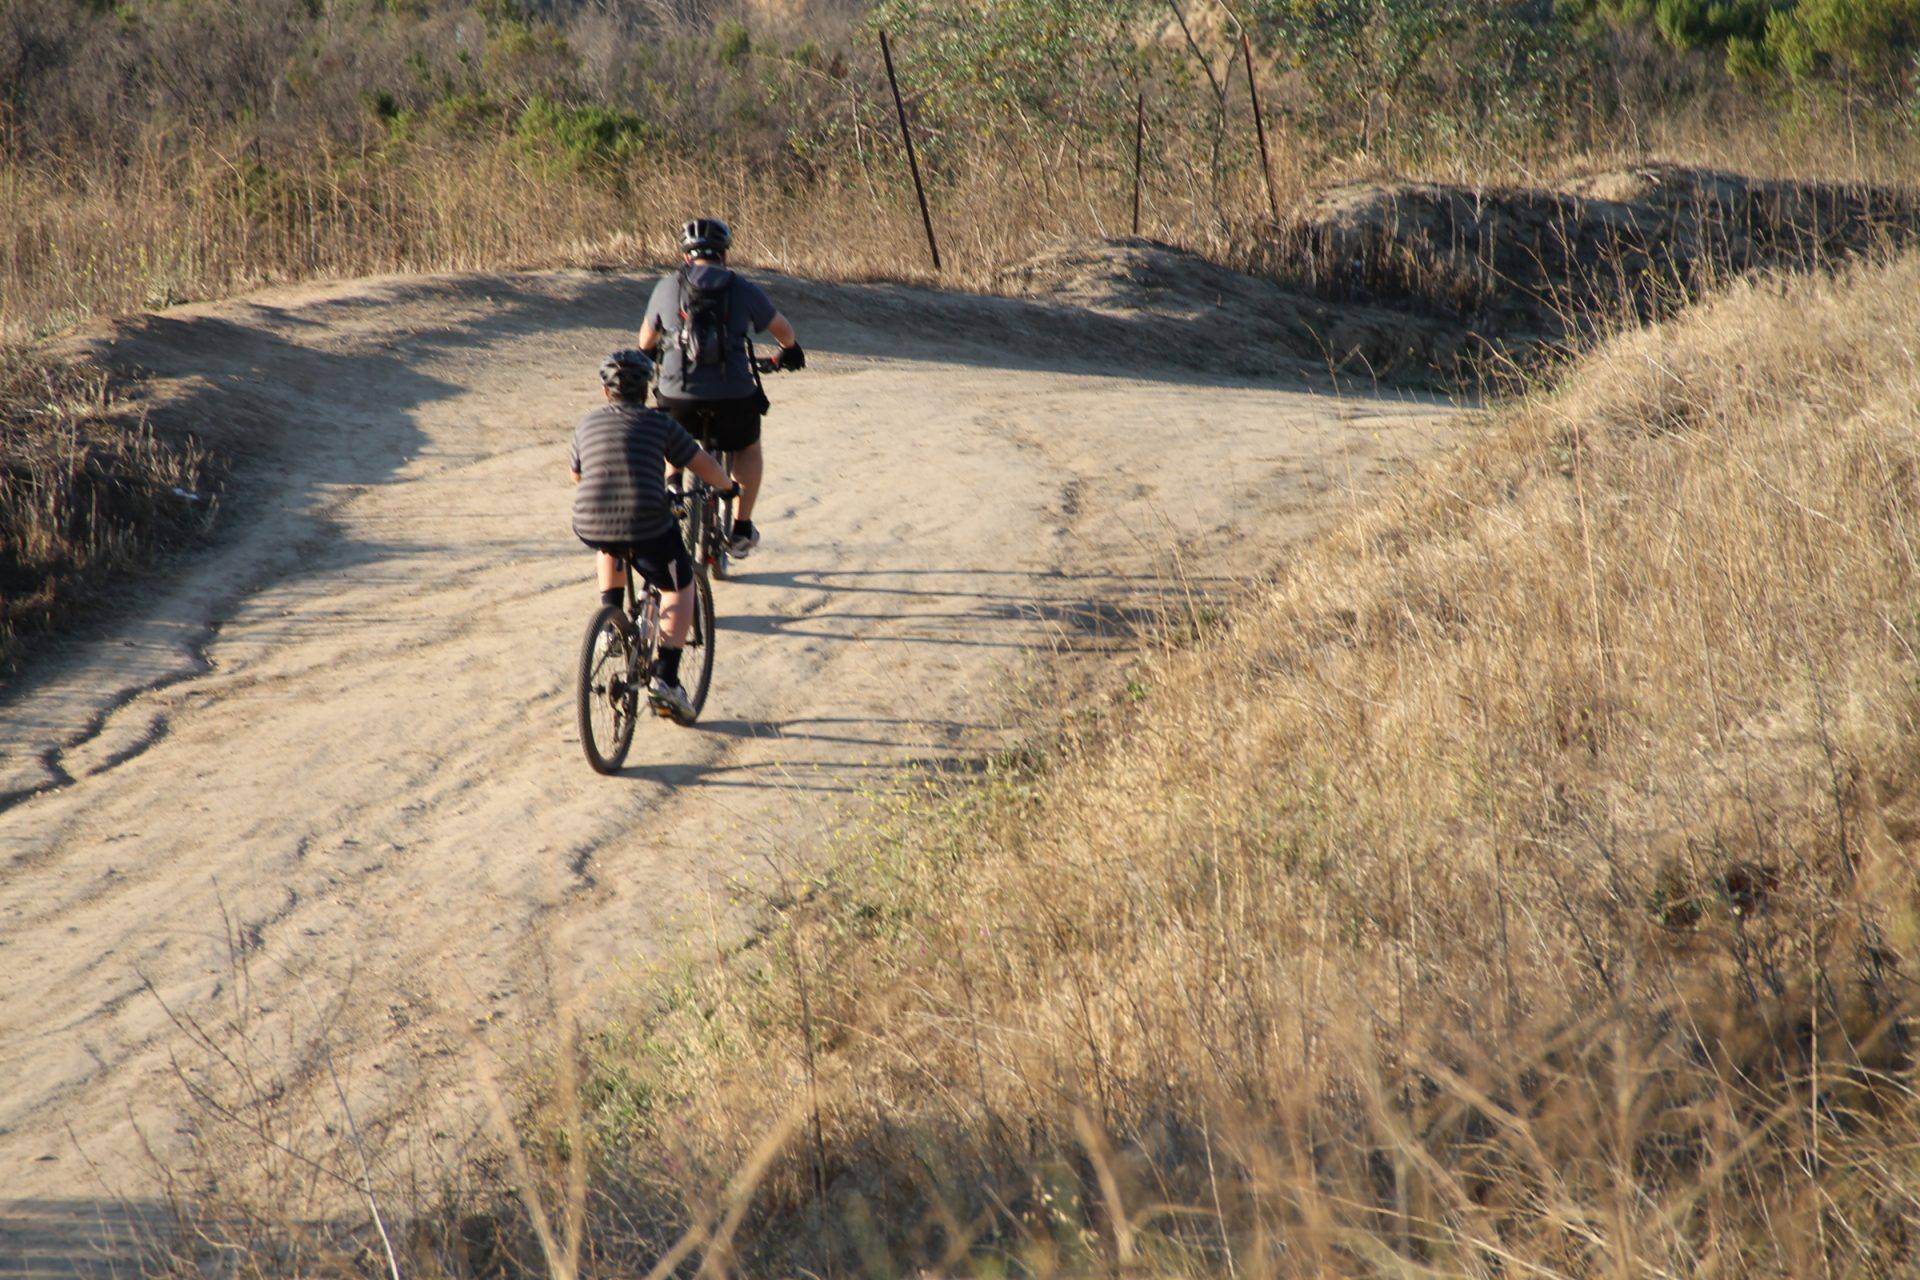 2 Bicyclists Riding on Dirt Trail